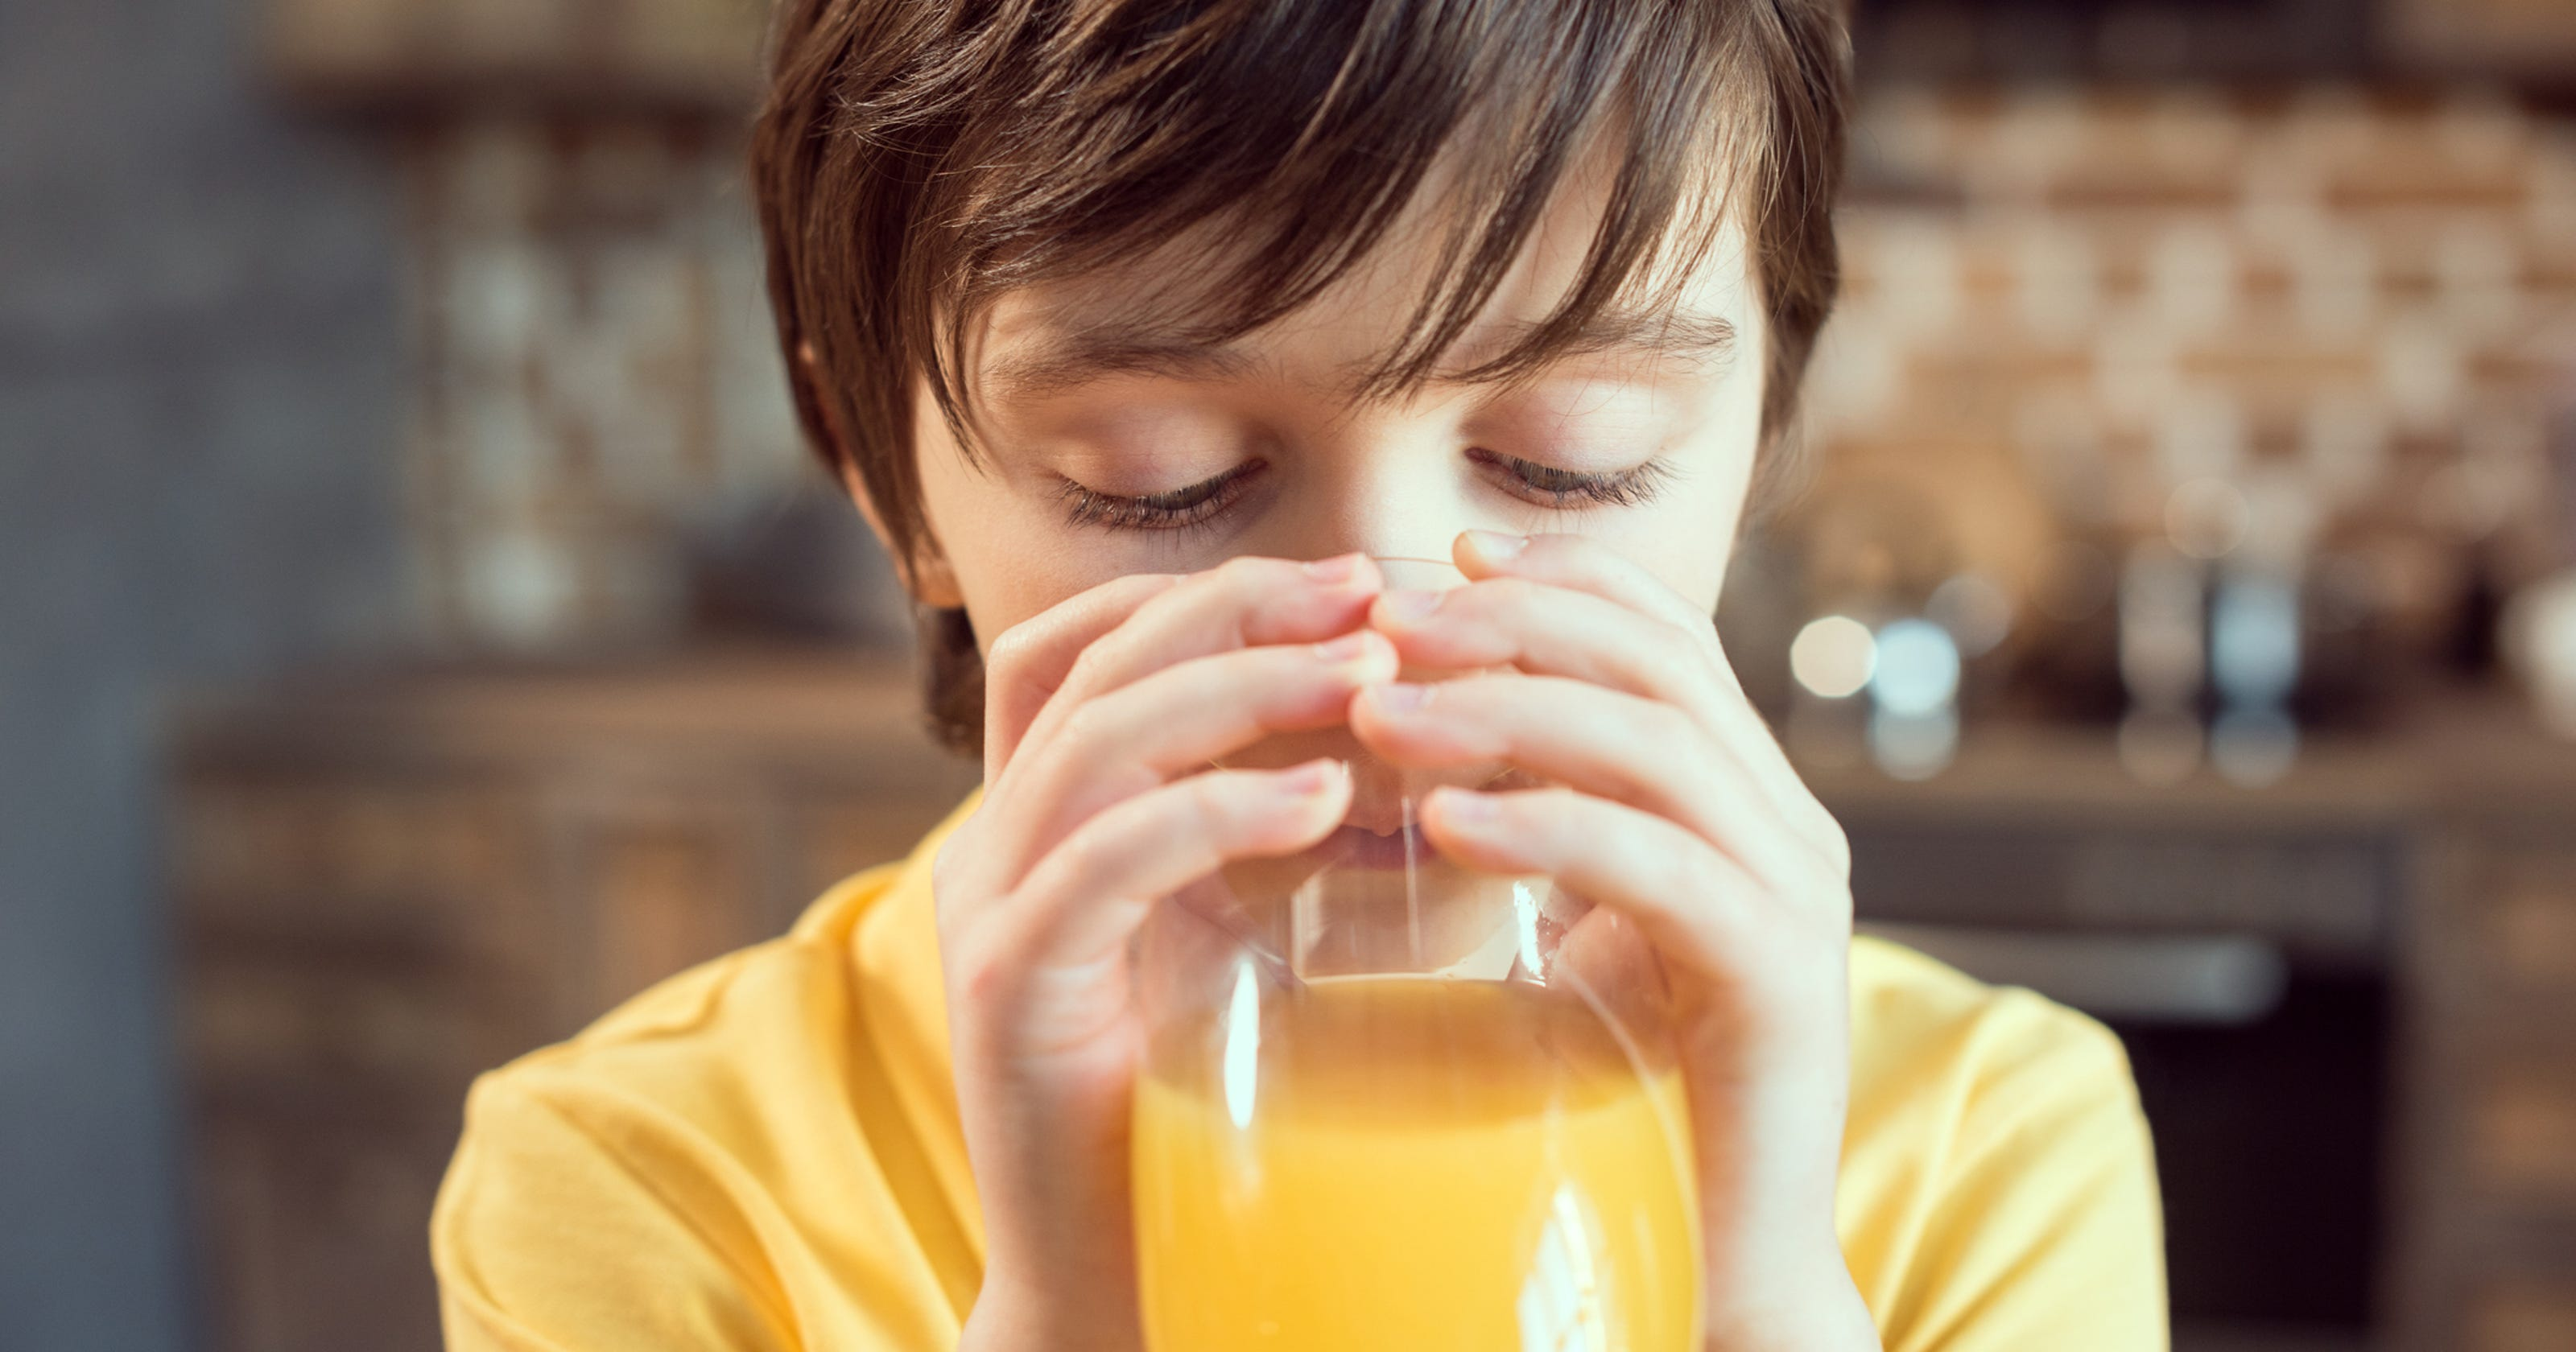 Fruit juices may have harmful levels of lead, arsenic, study finds